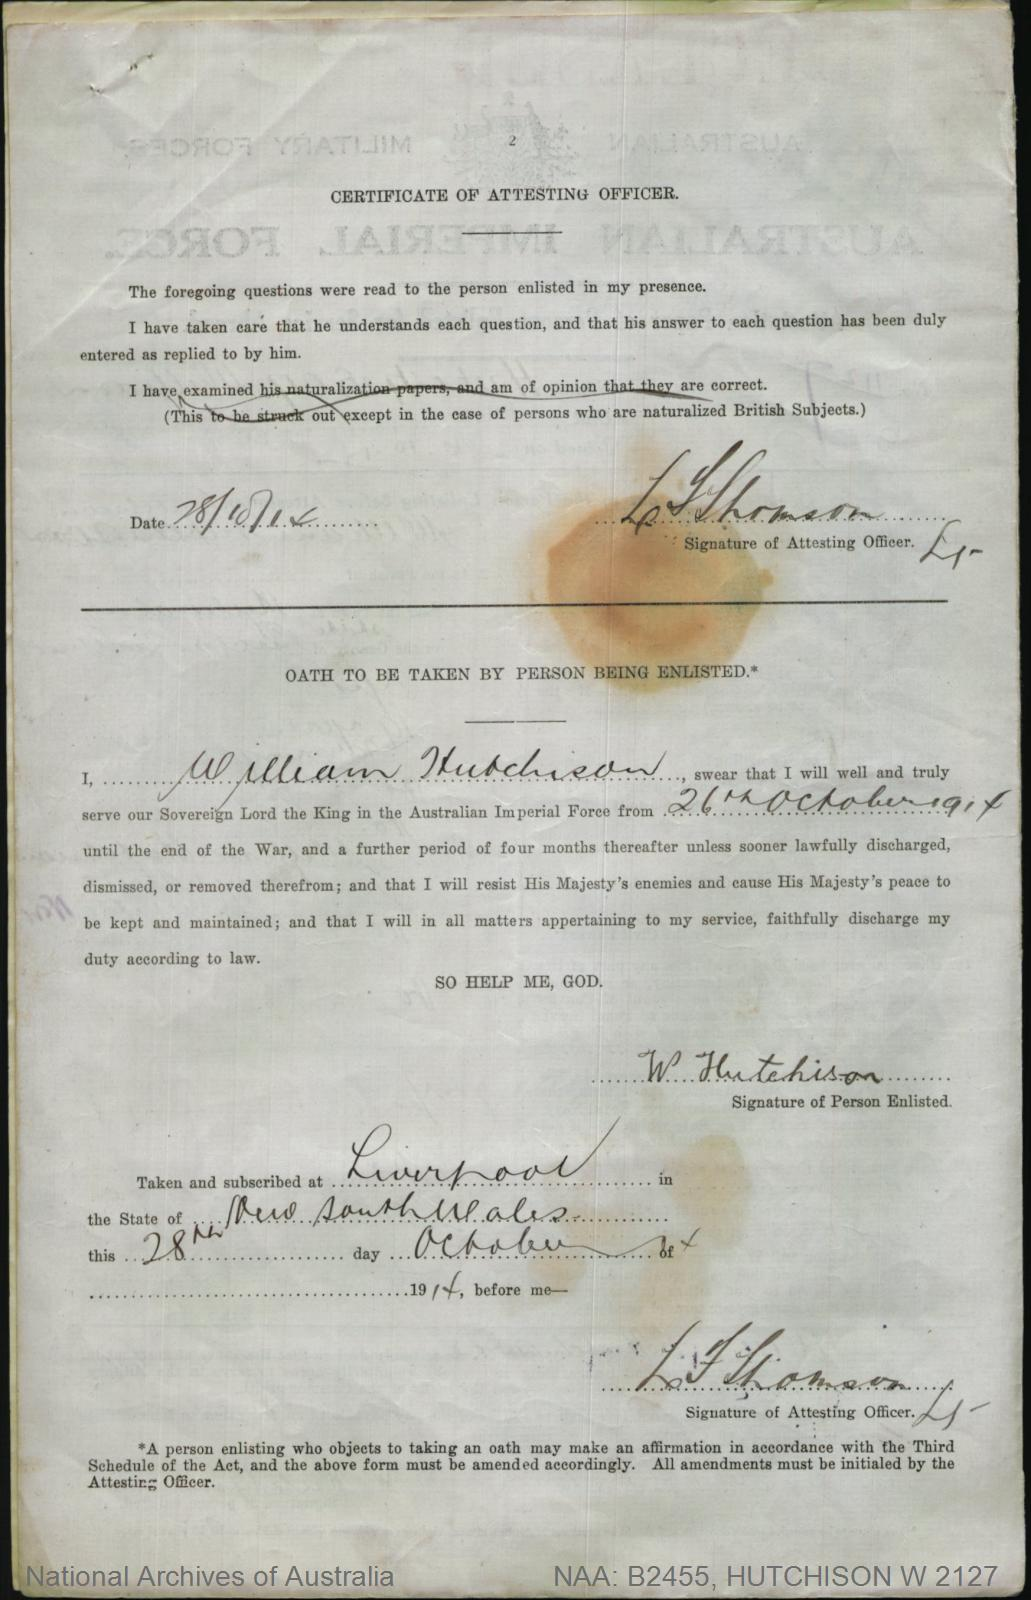 HUTCHISON William : Service Number - 2127 : Place of Birth - Mulwala Vic : Place of Enlistment - Liverpool NSW : Next of Kin - (Father) HUTCHISON William